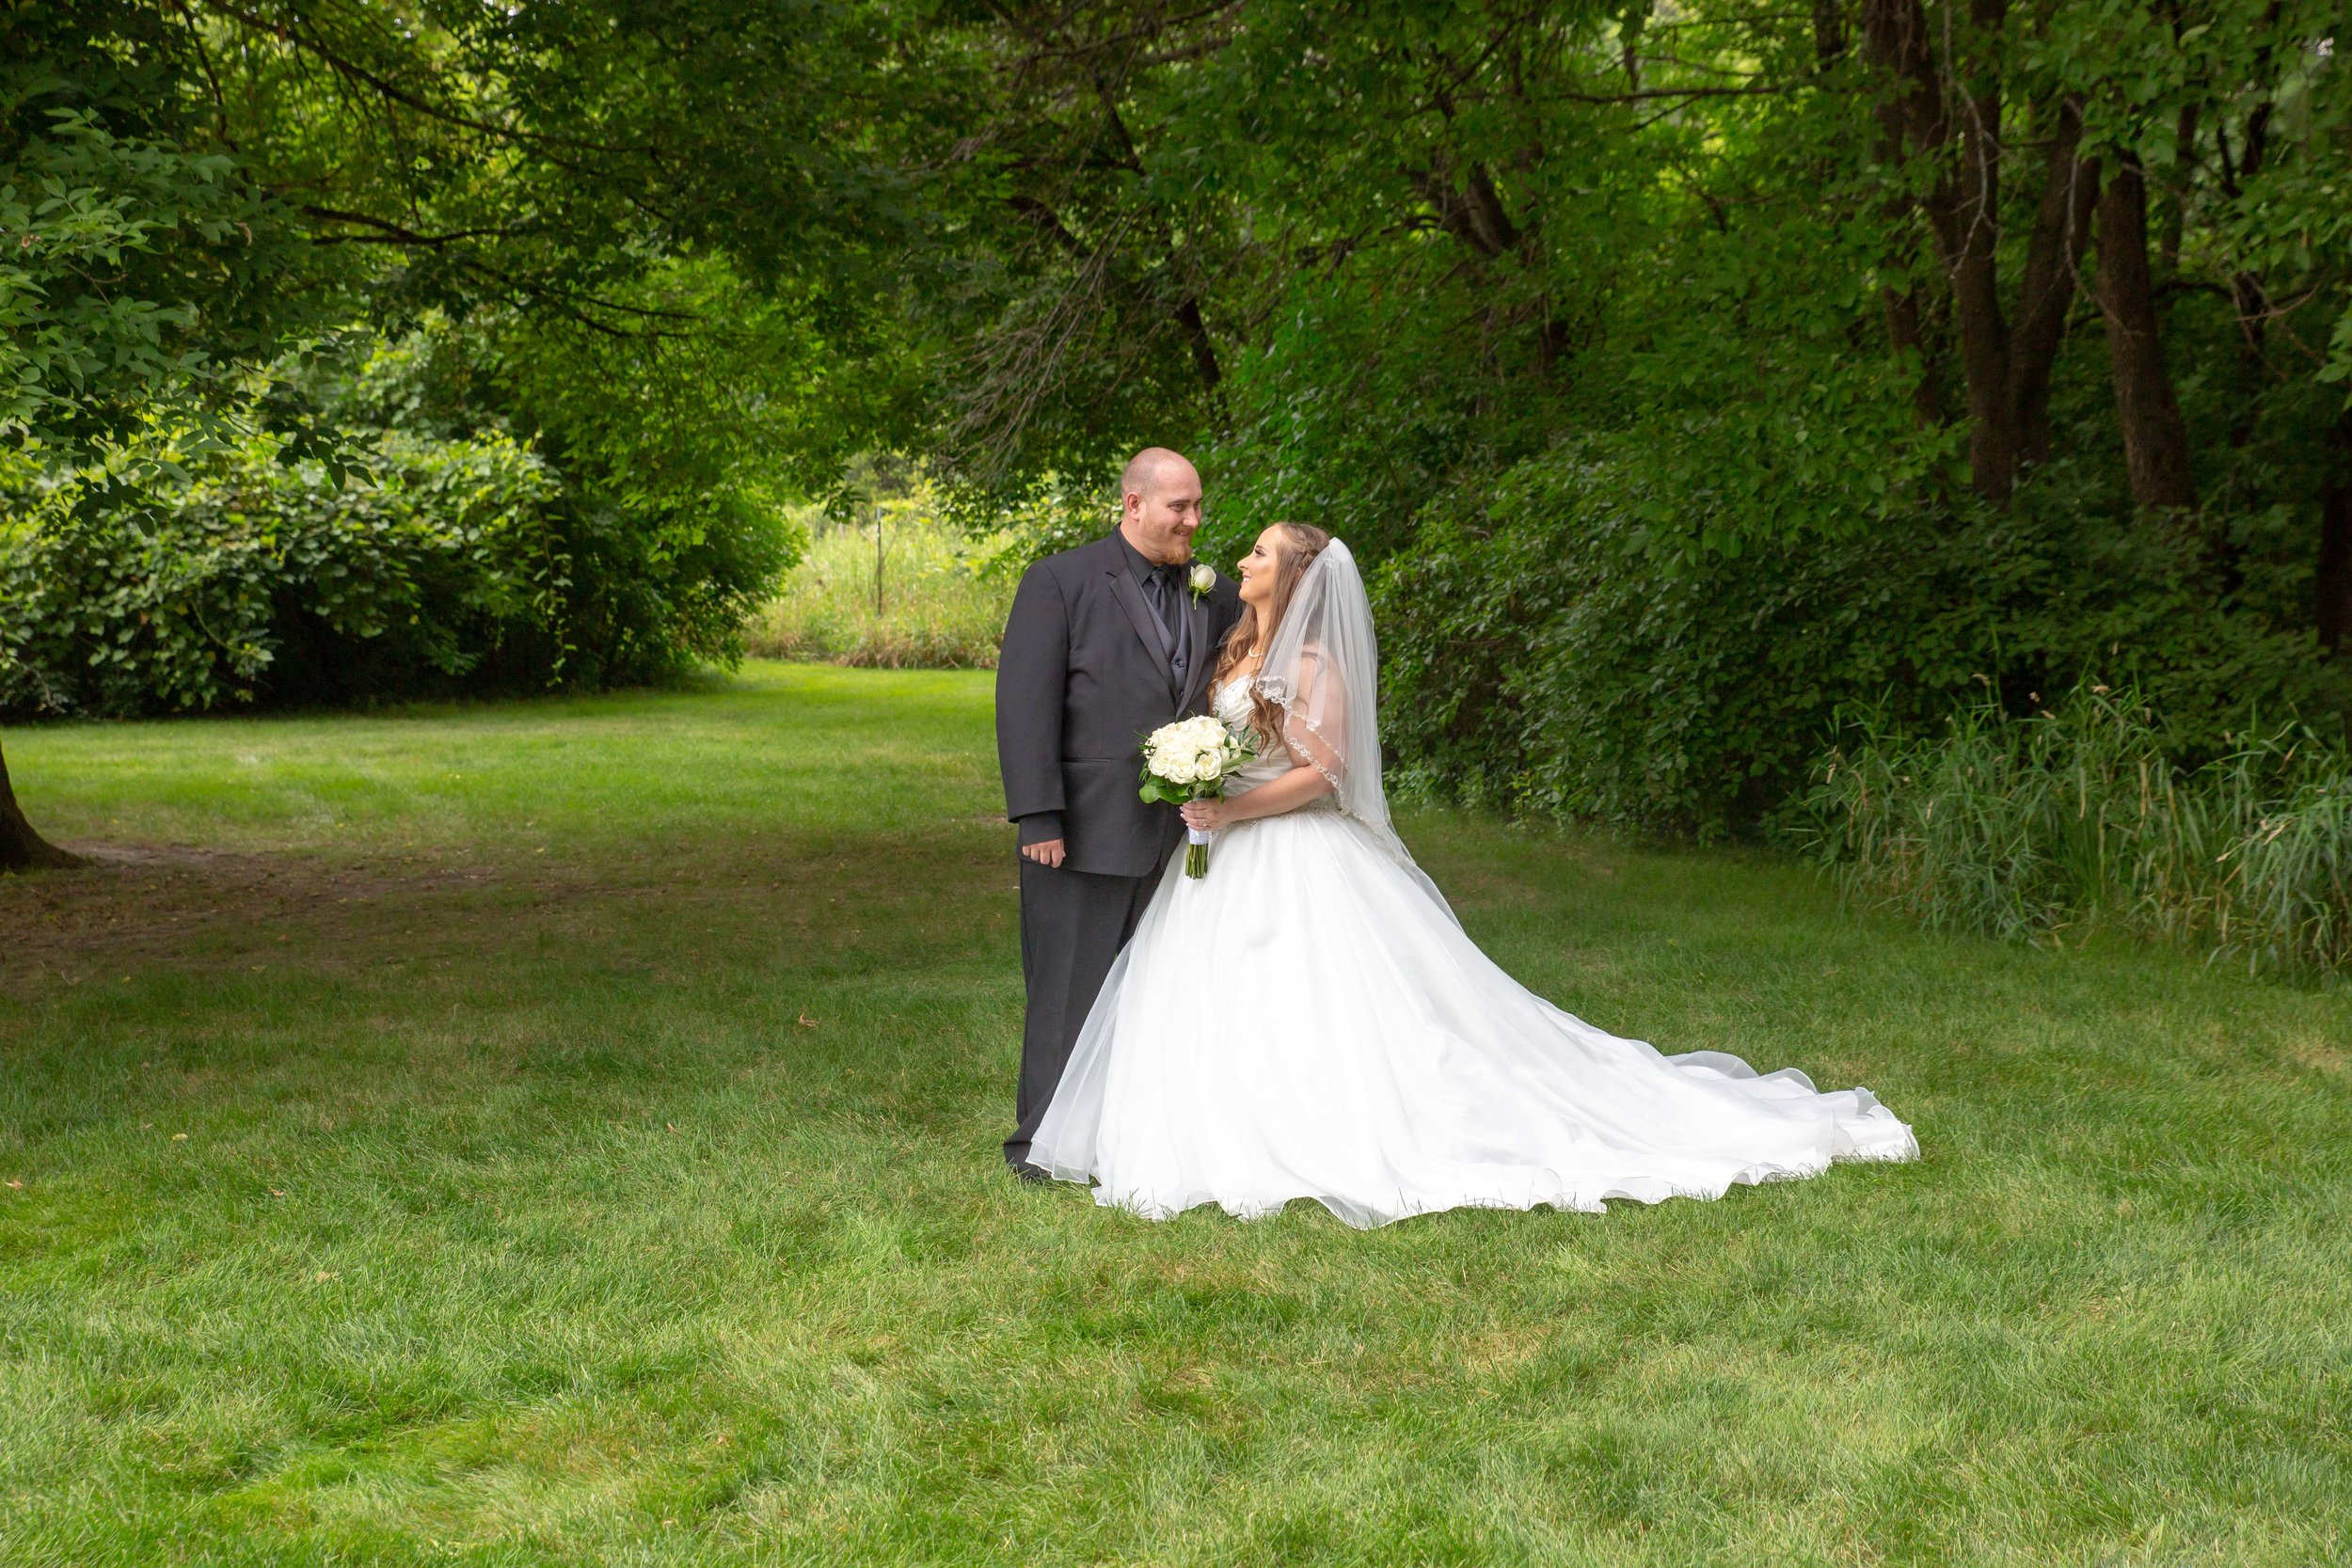 Cindyrella's Garden, Fab Weddings, outdoor Minnesota ceremony, Rosemount wedding, south metro, first look